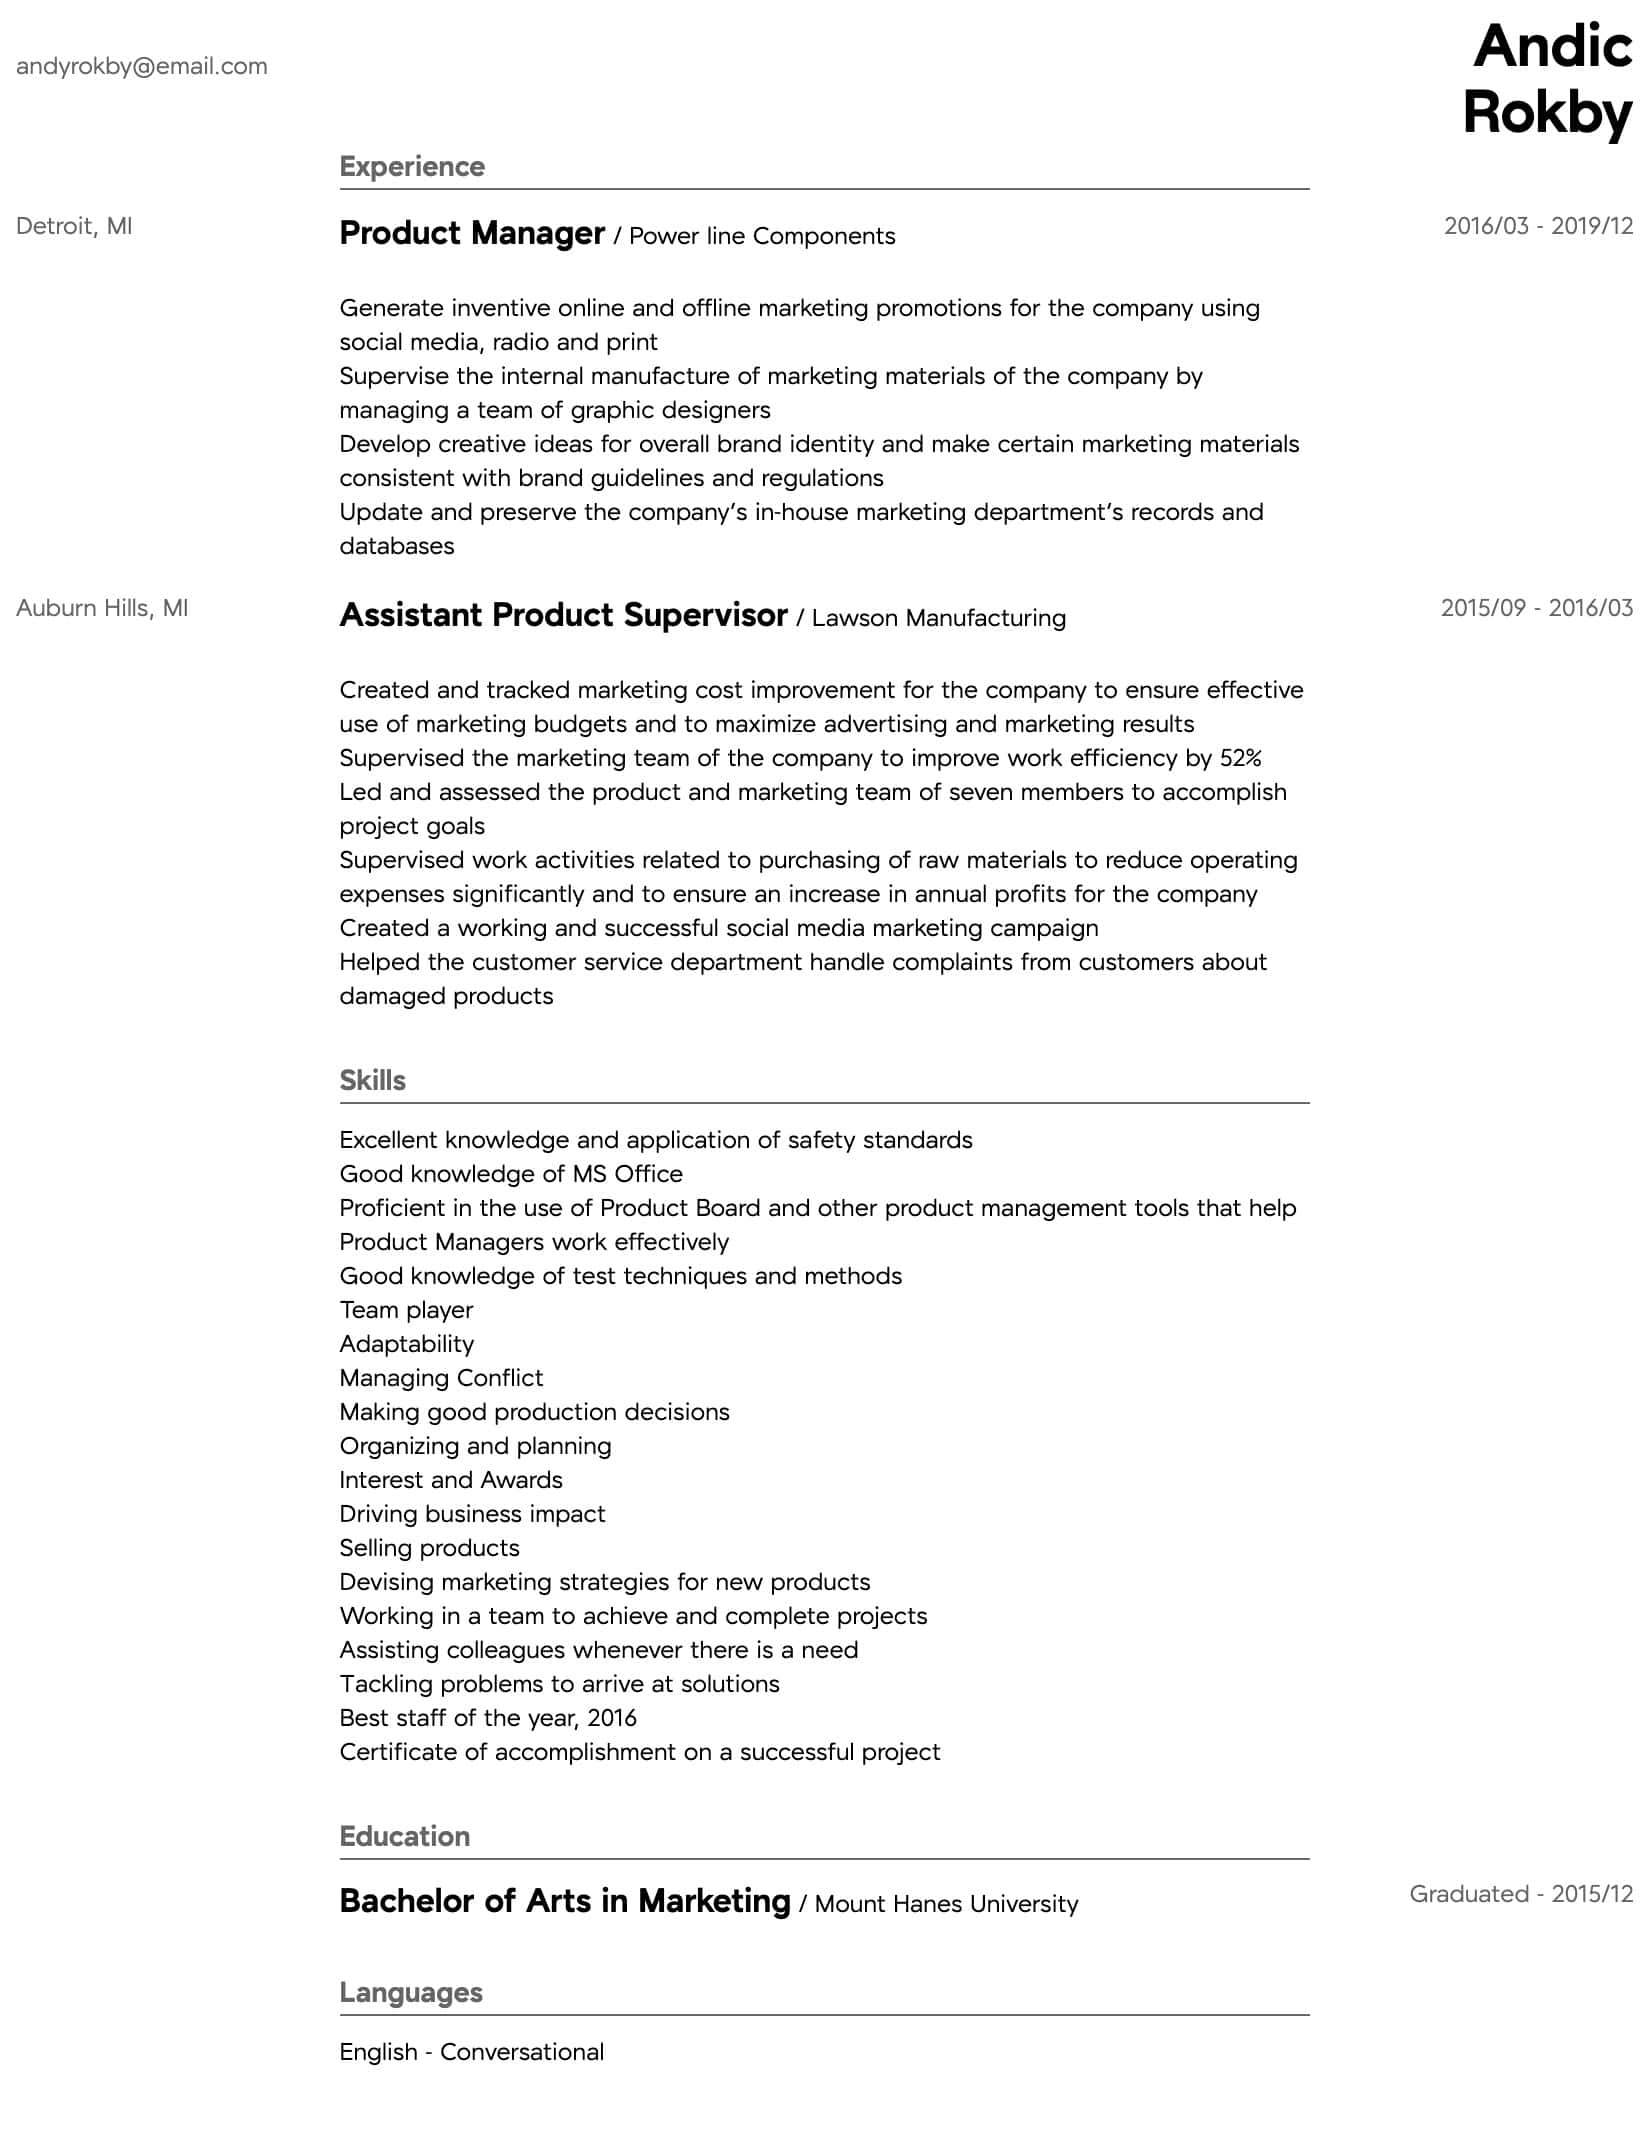 product manager resume samples all experience levels for position intermediate template Resume Resume For Product Manager Position